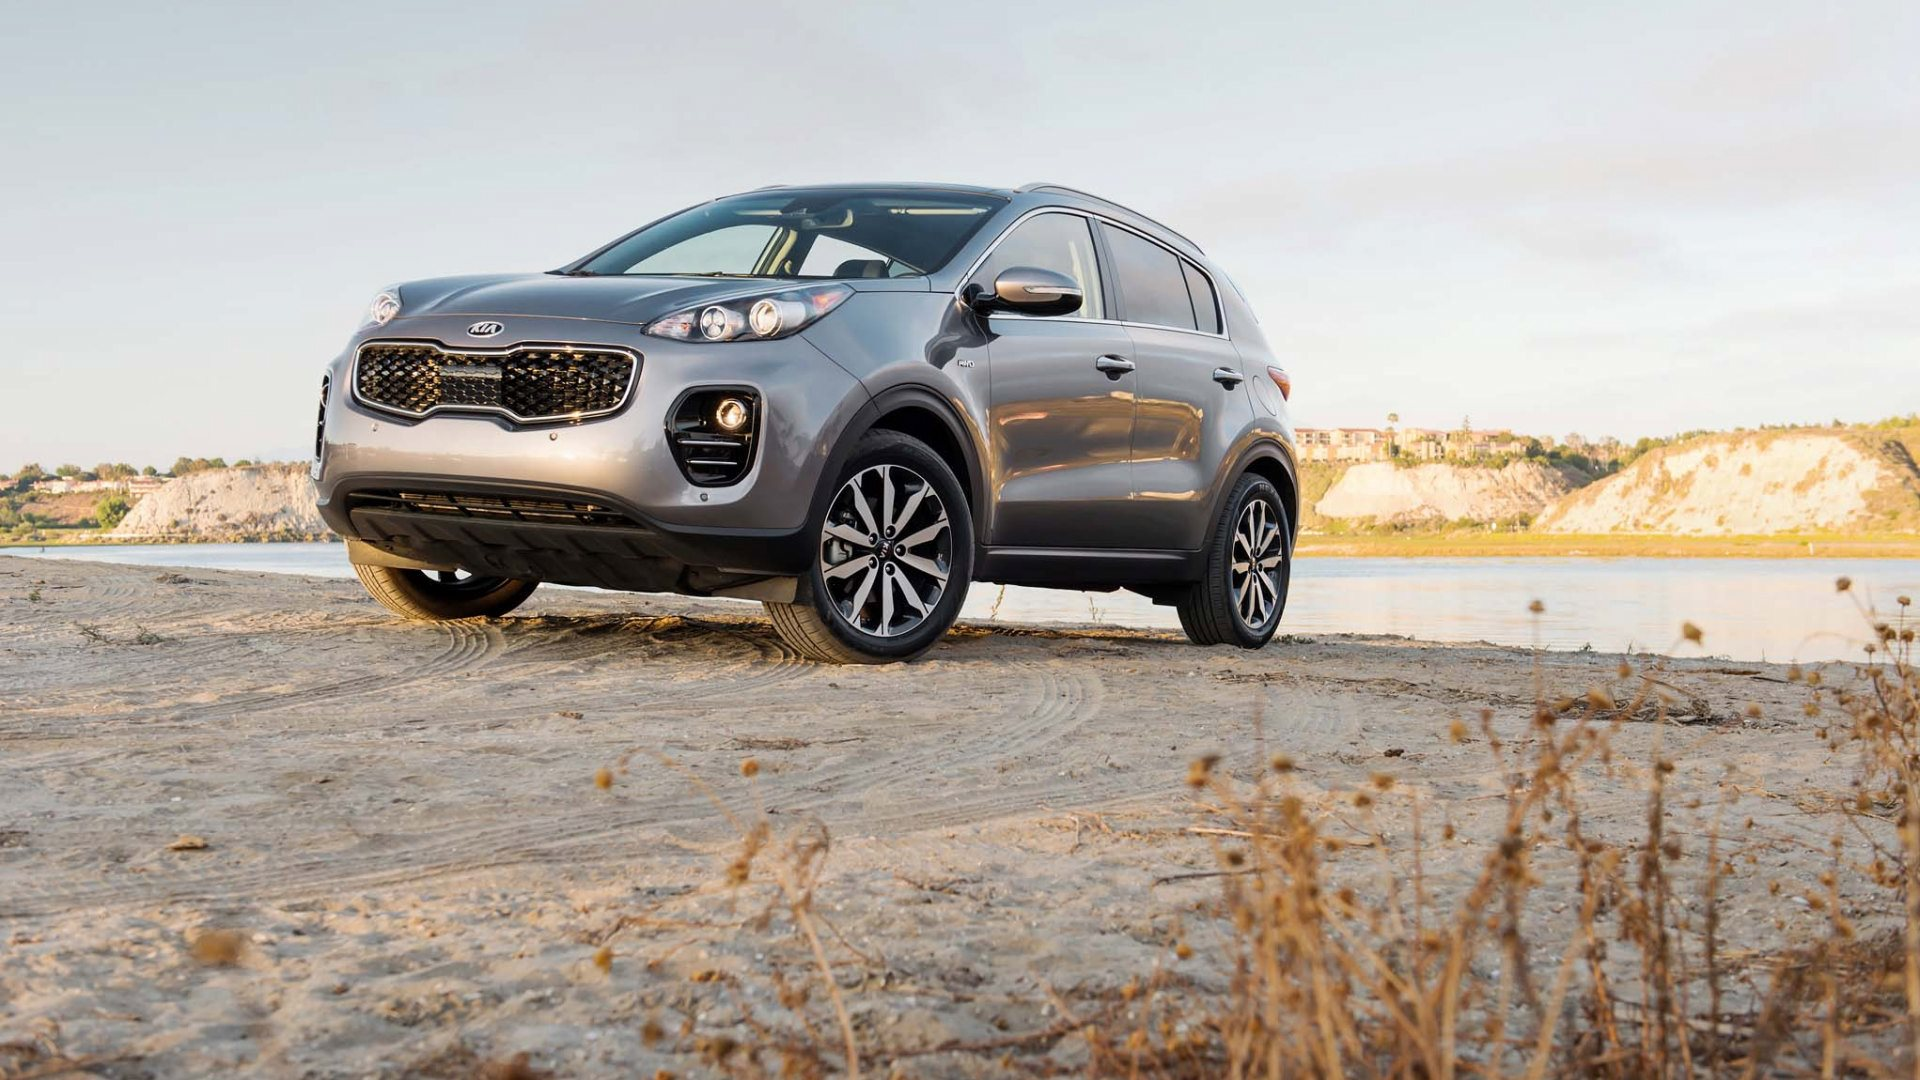 2017 kia sportage ex wallpaper background